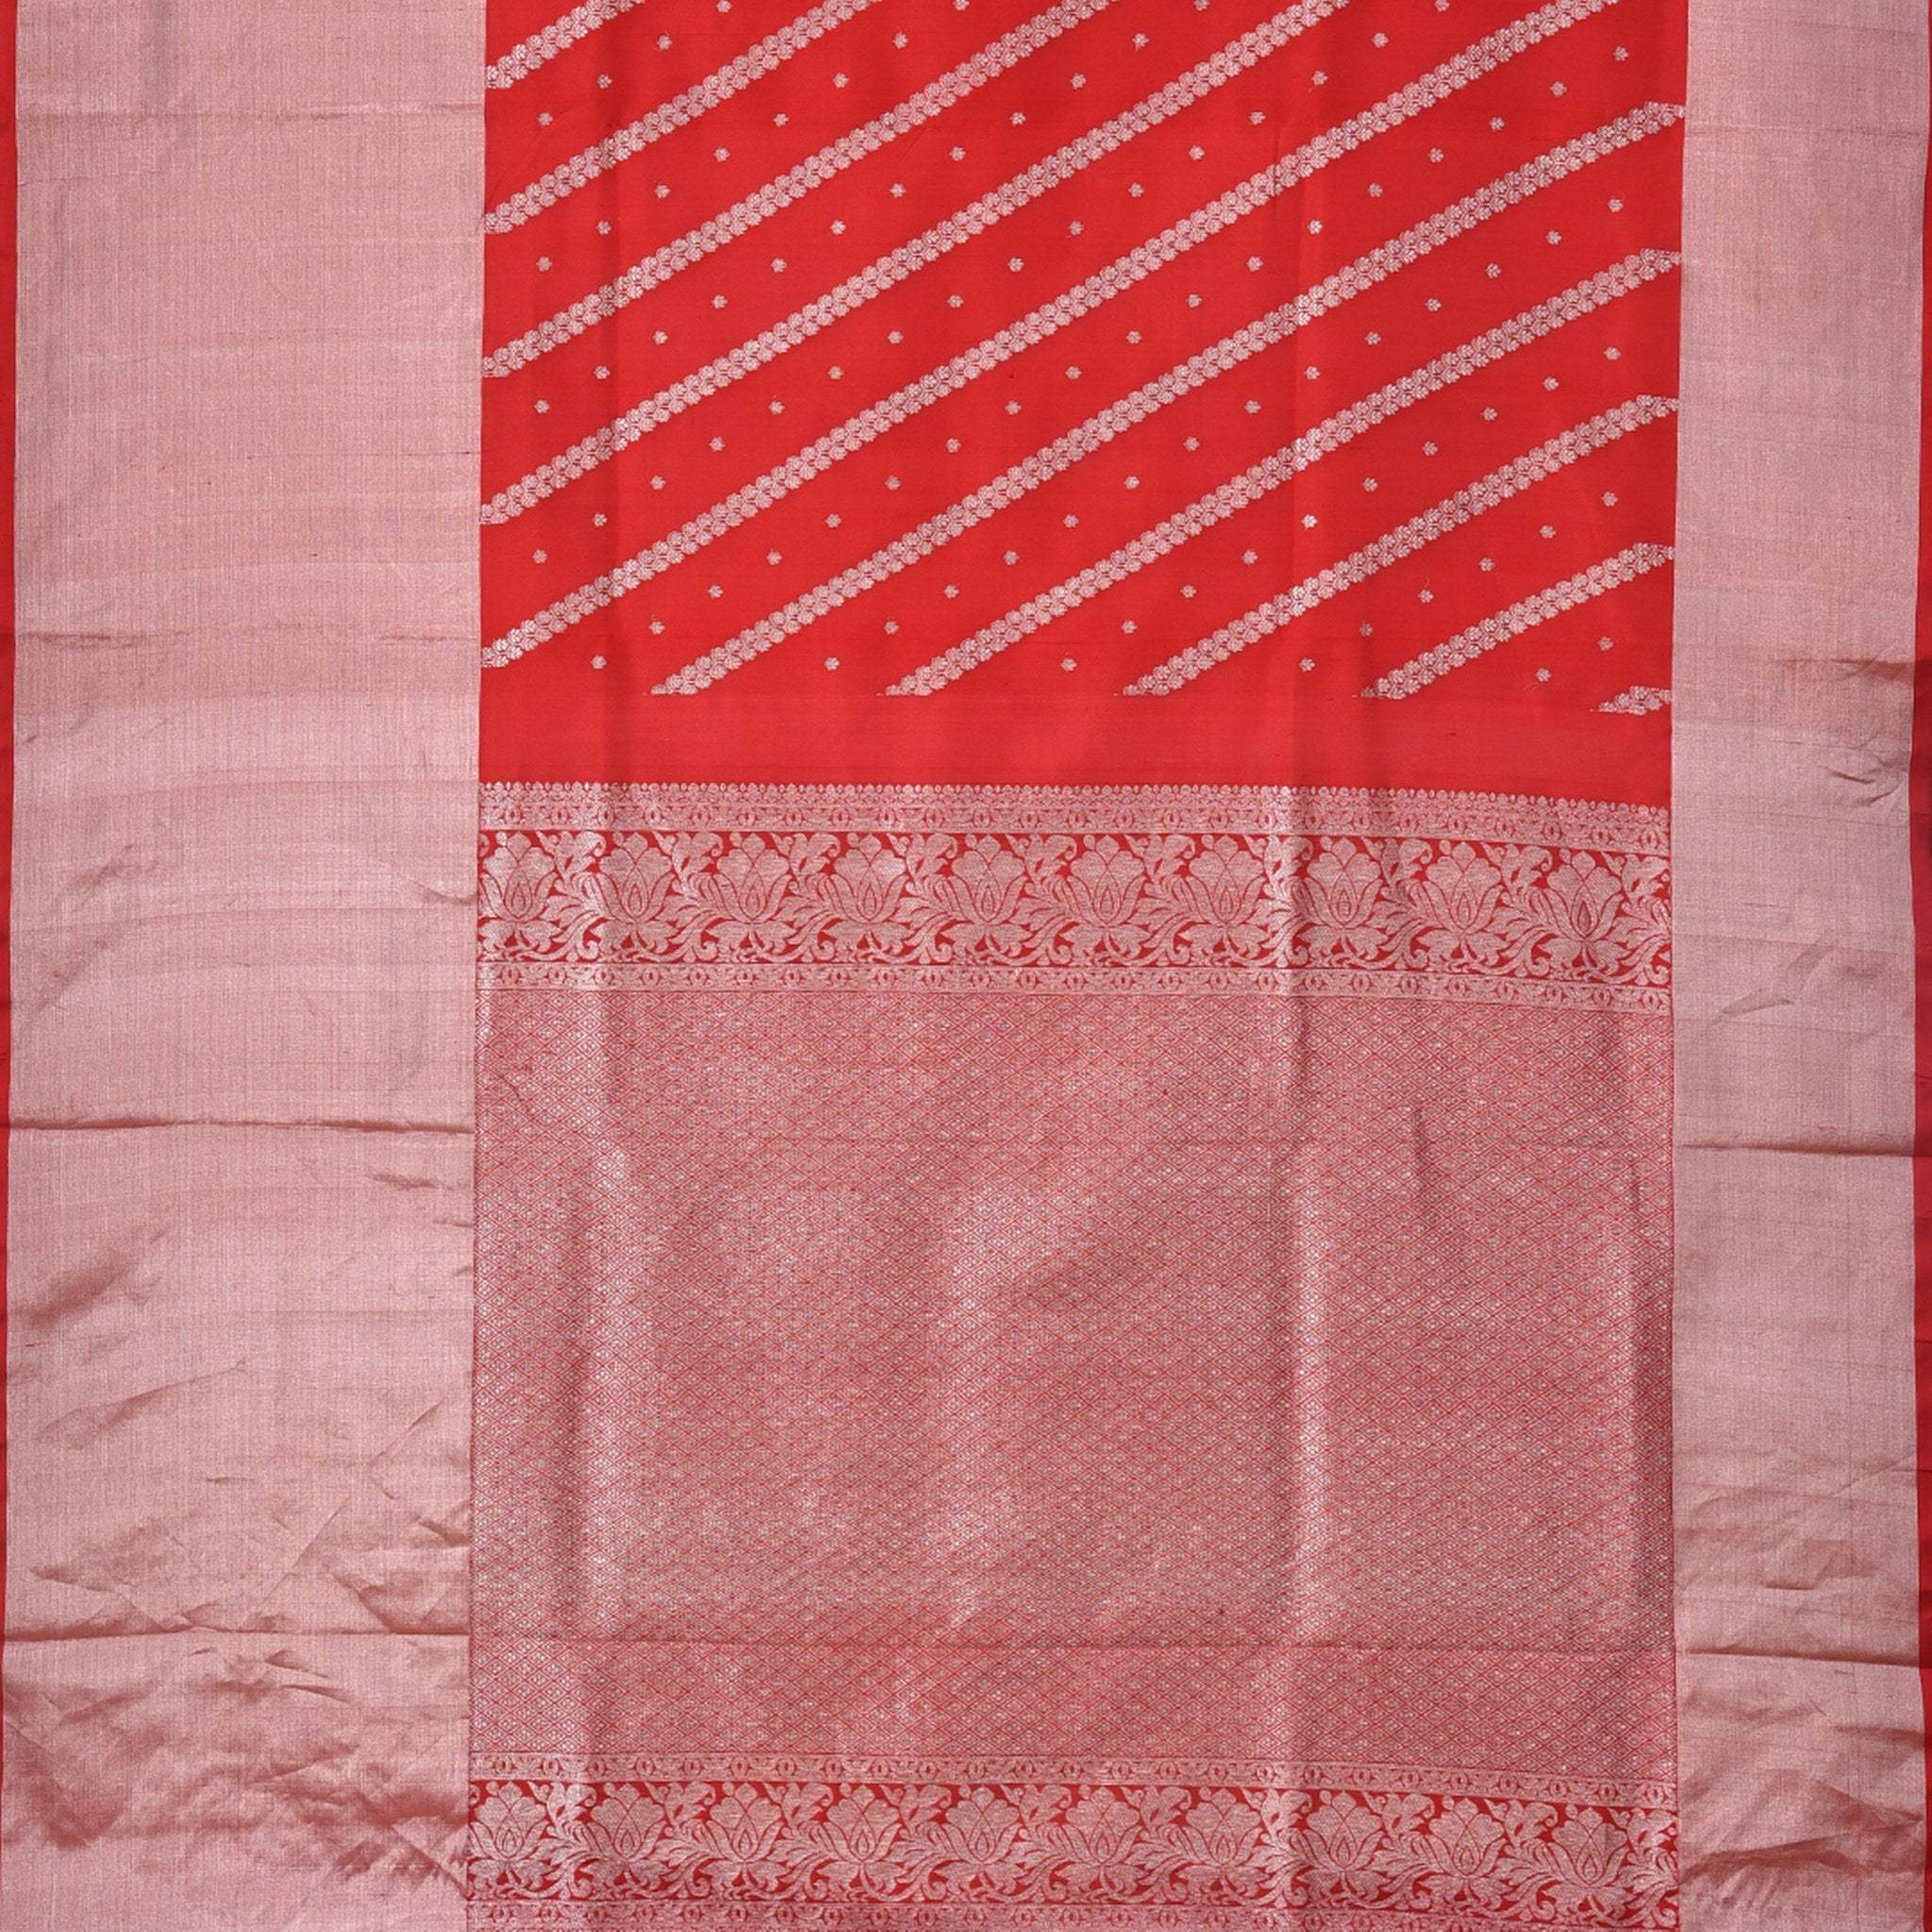 BB096380-Vivid Vermillion Venkatagiri Handloom Silk Saree